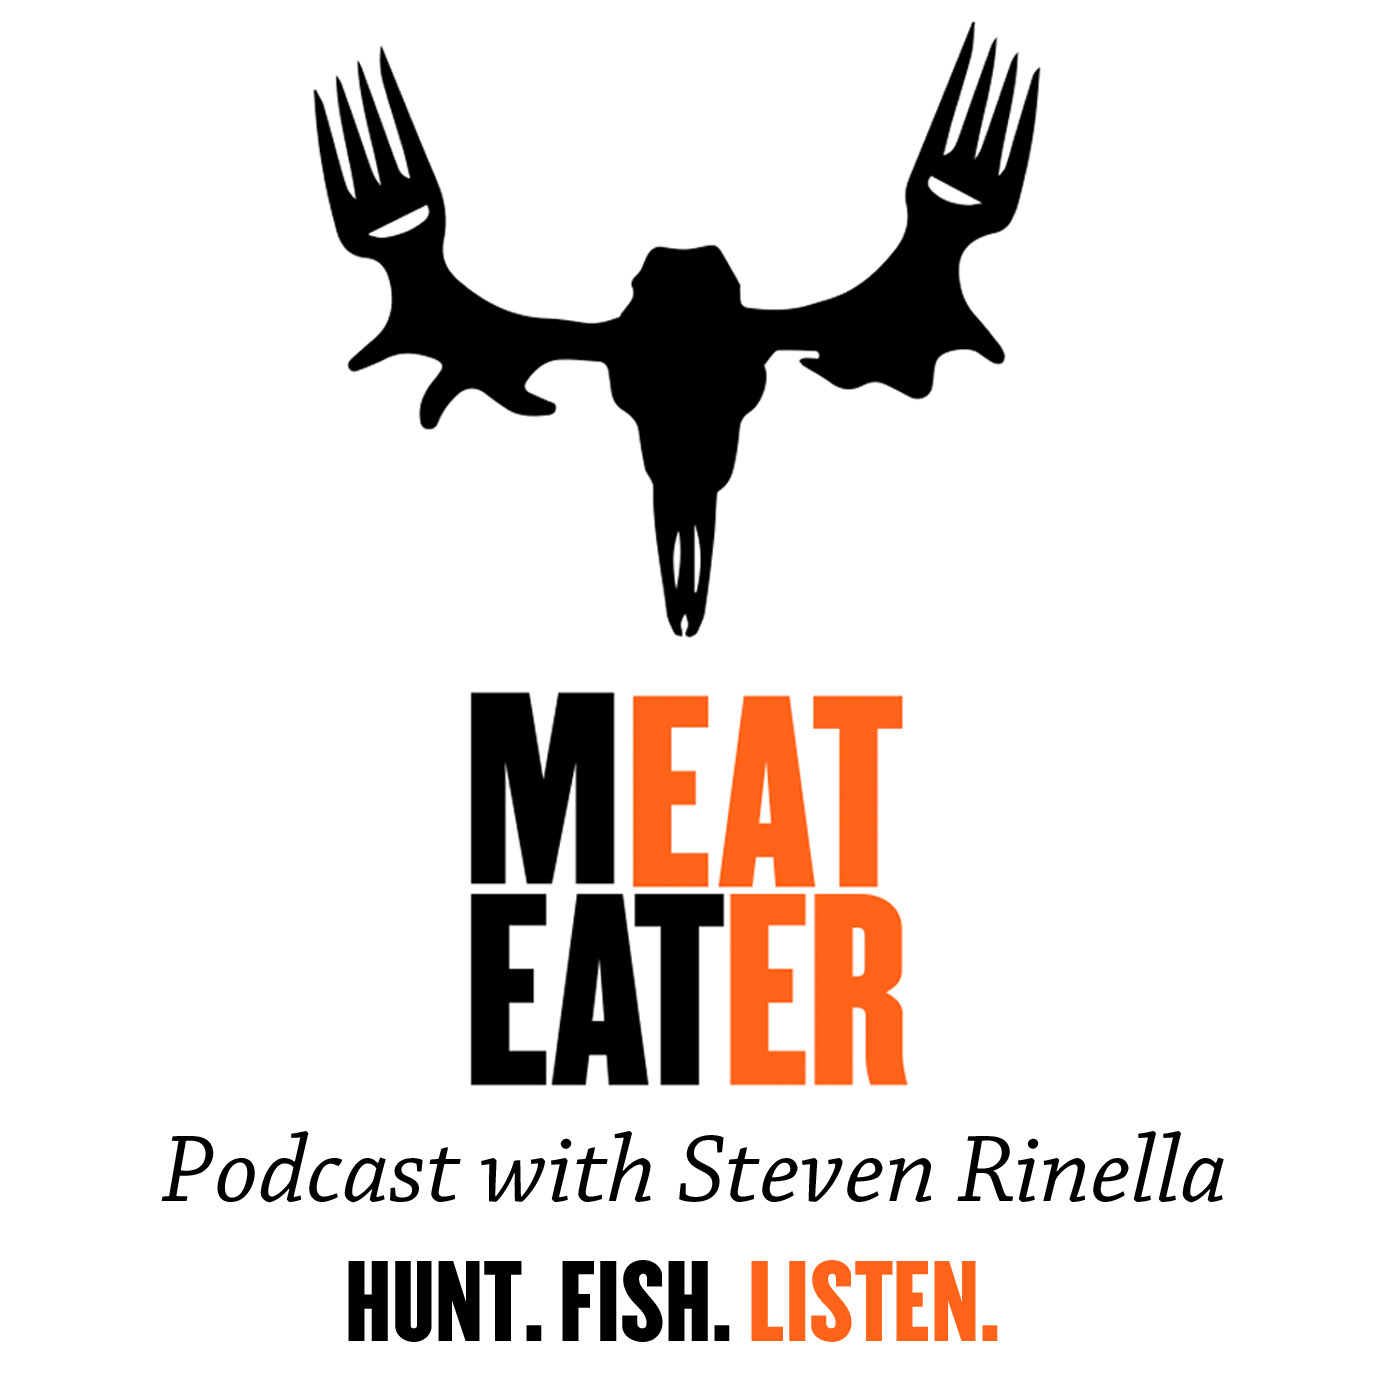 Artwork for Episode 040: Paducah, Kentucky. Steven Rinella talks with small-game and catfish aficionado Kevin Murphy, along with Janis Putelis, Garret Smith, and Adam Moffat from the MeatEater crew.